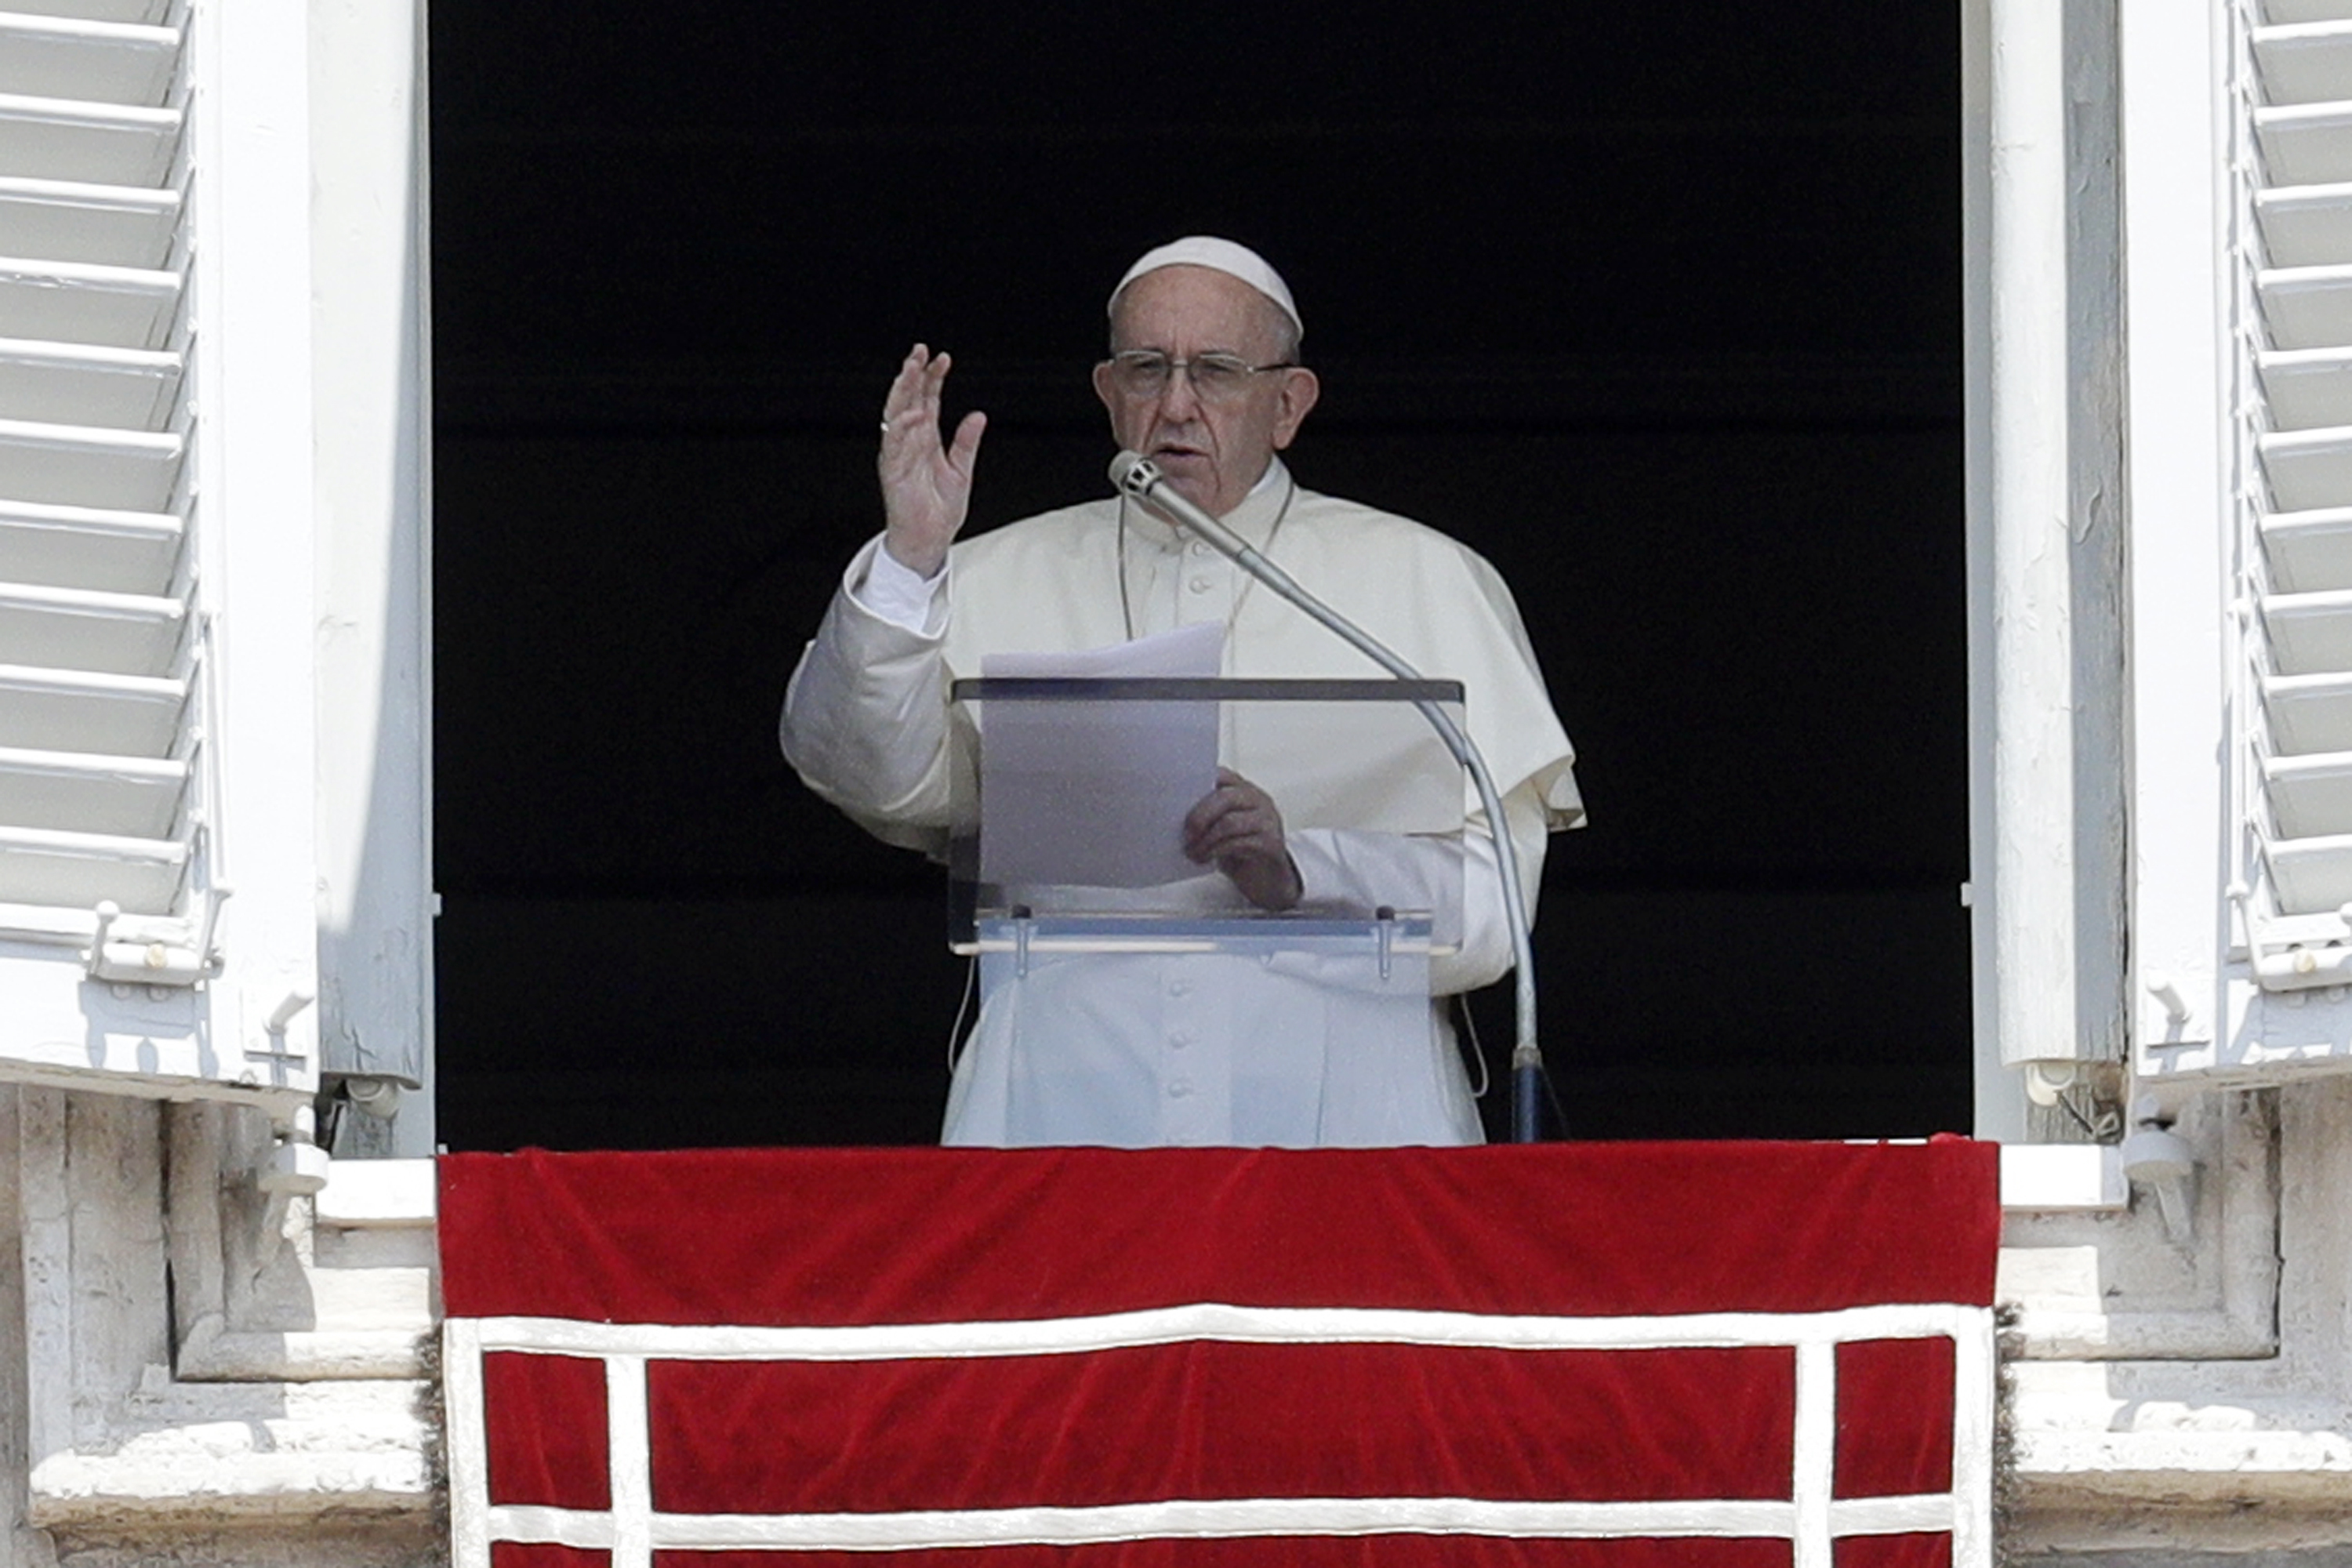 """In this Aug. 5, 2018, file photo Pope Francis delivers a blessing from his studio window overlooking St. Peter's Square at the Vatican. Pope Francis' decree that the death penalty is """"inadmissible"""" in all cases could pose a dilemma for Roman Catholic politicians and judges in the United States. Some Catholic leaders in death penalty states have said they'll continue to support capital punishment, despite the change in church teaching. (Gregorio Borgia/AP)"""